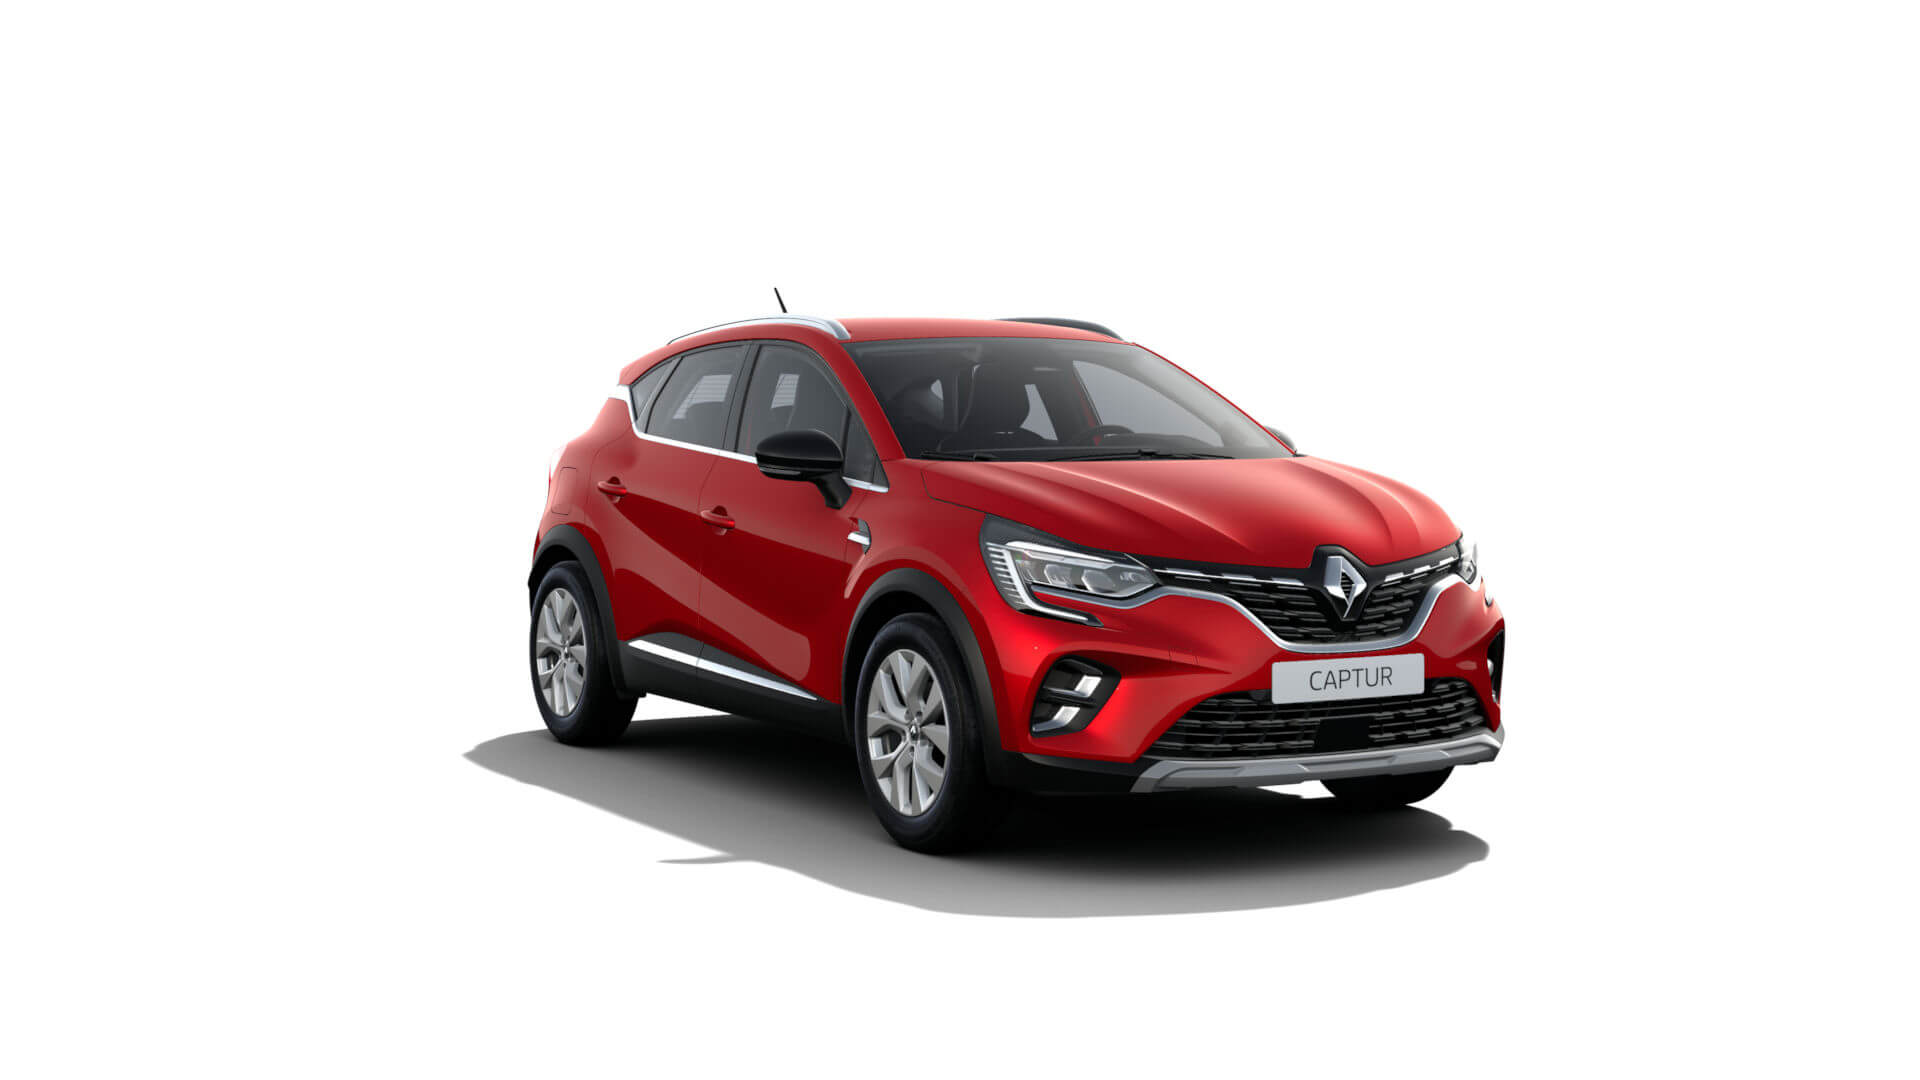 Automodell Rot - Renault Captur - Renault Ahrens Hannover